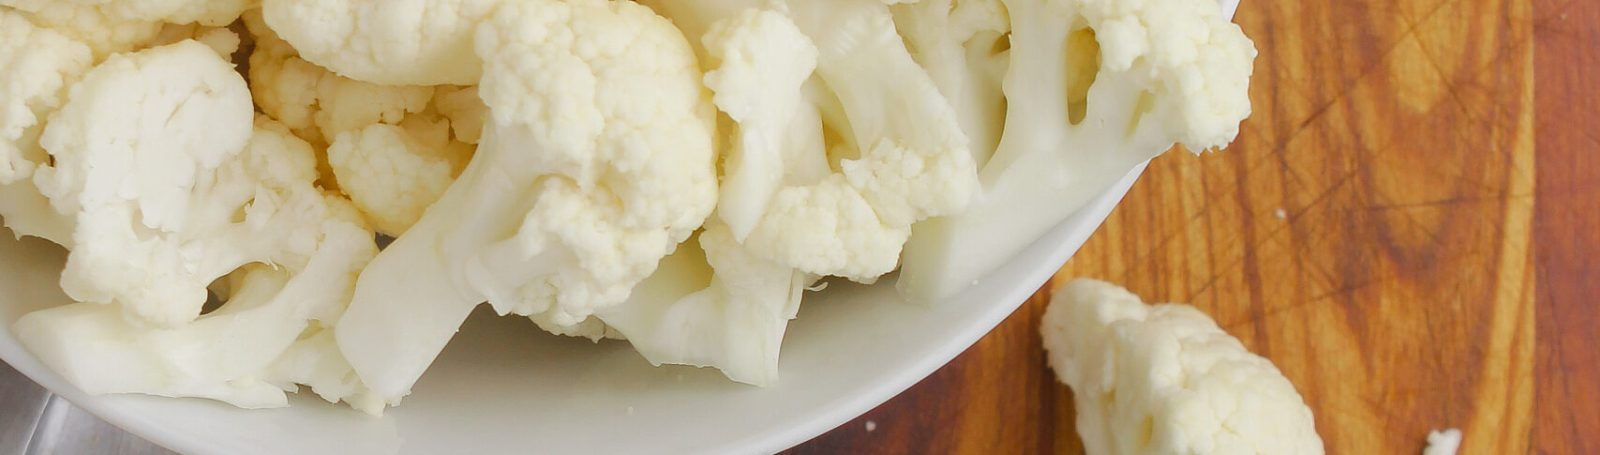 How to Make Cauliflower Florets